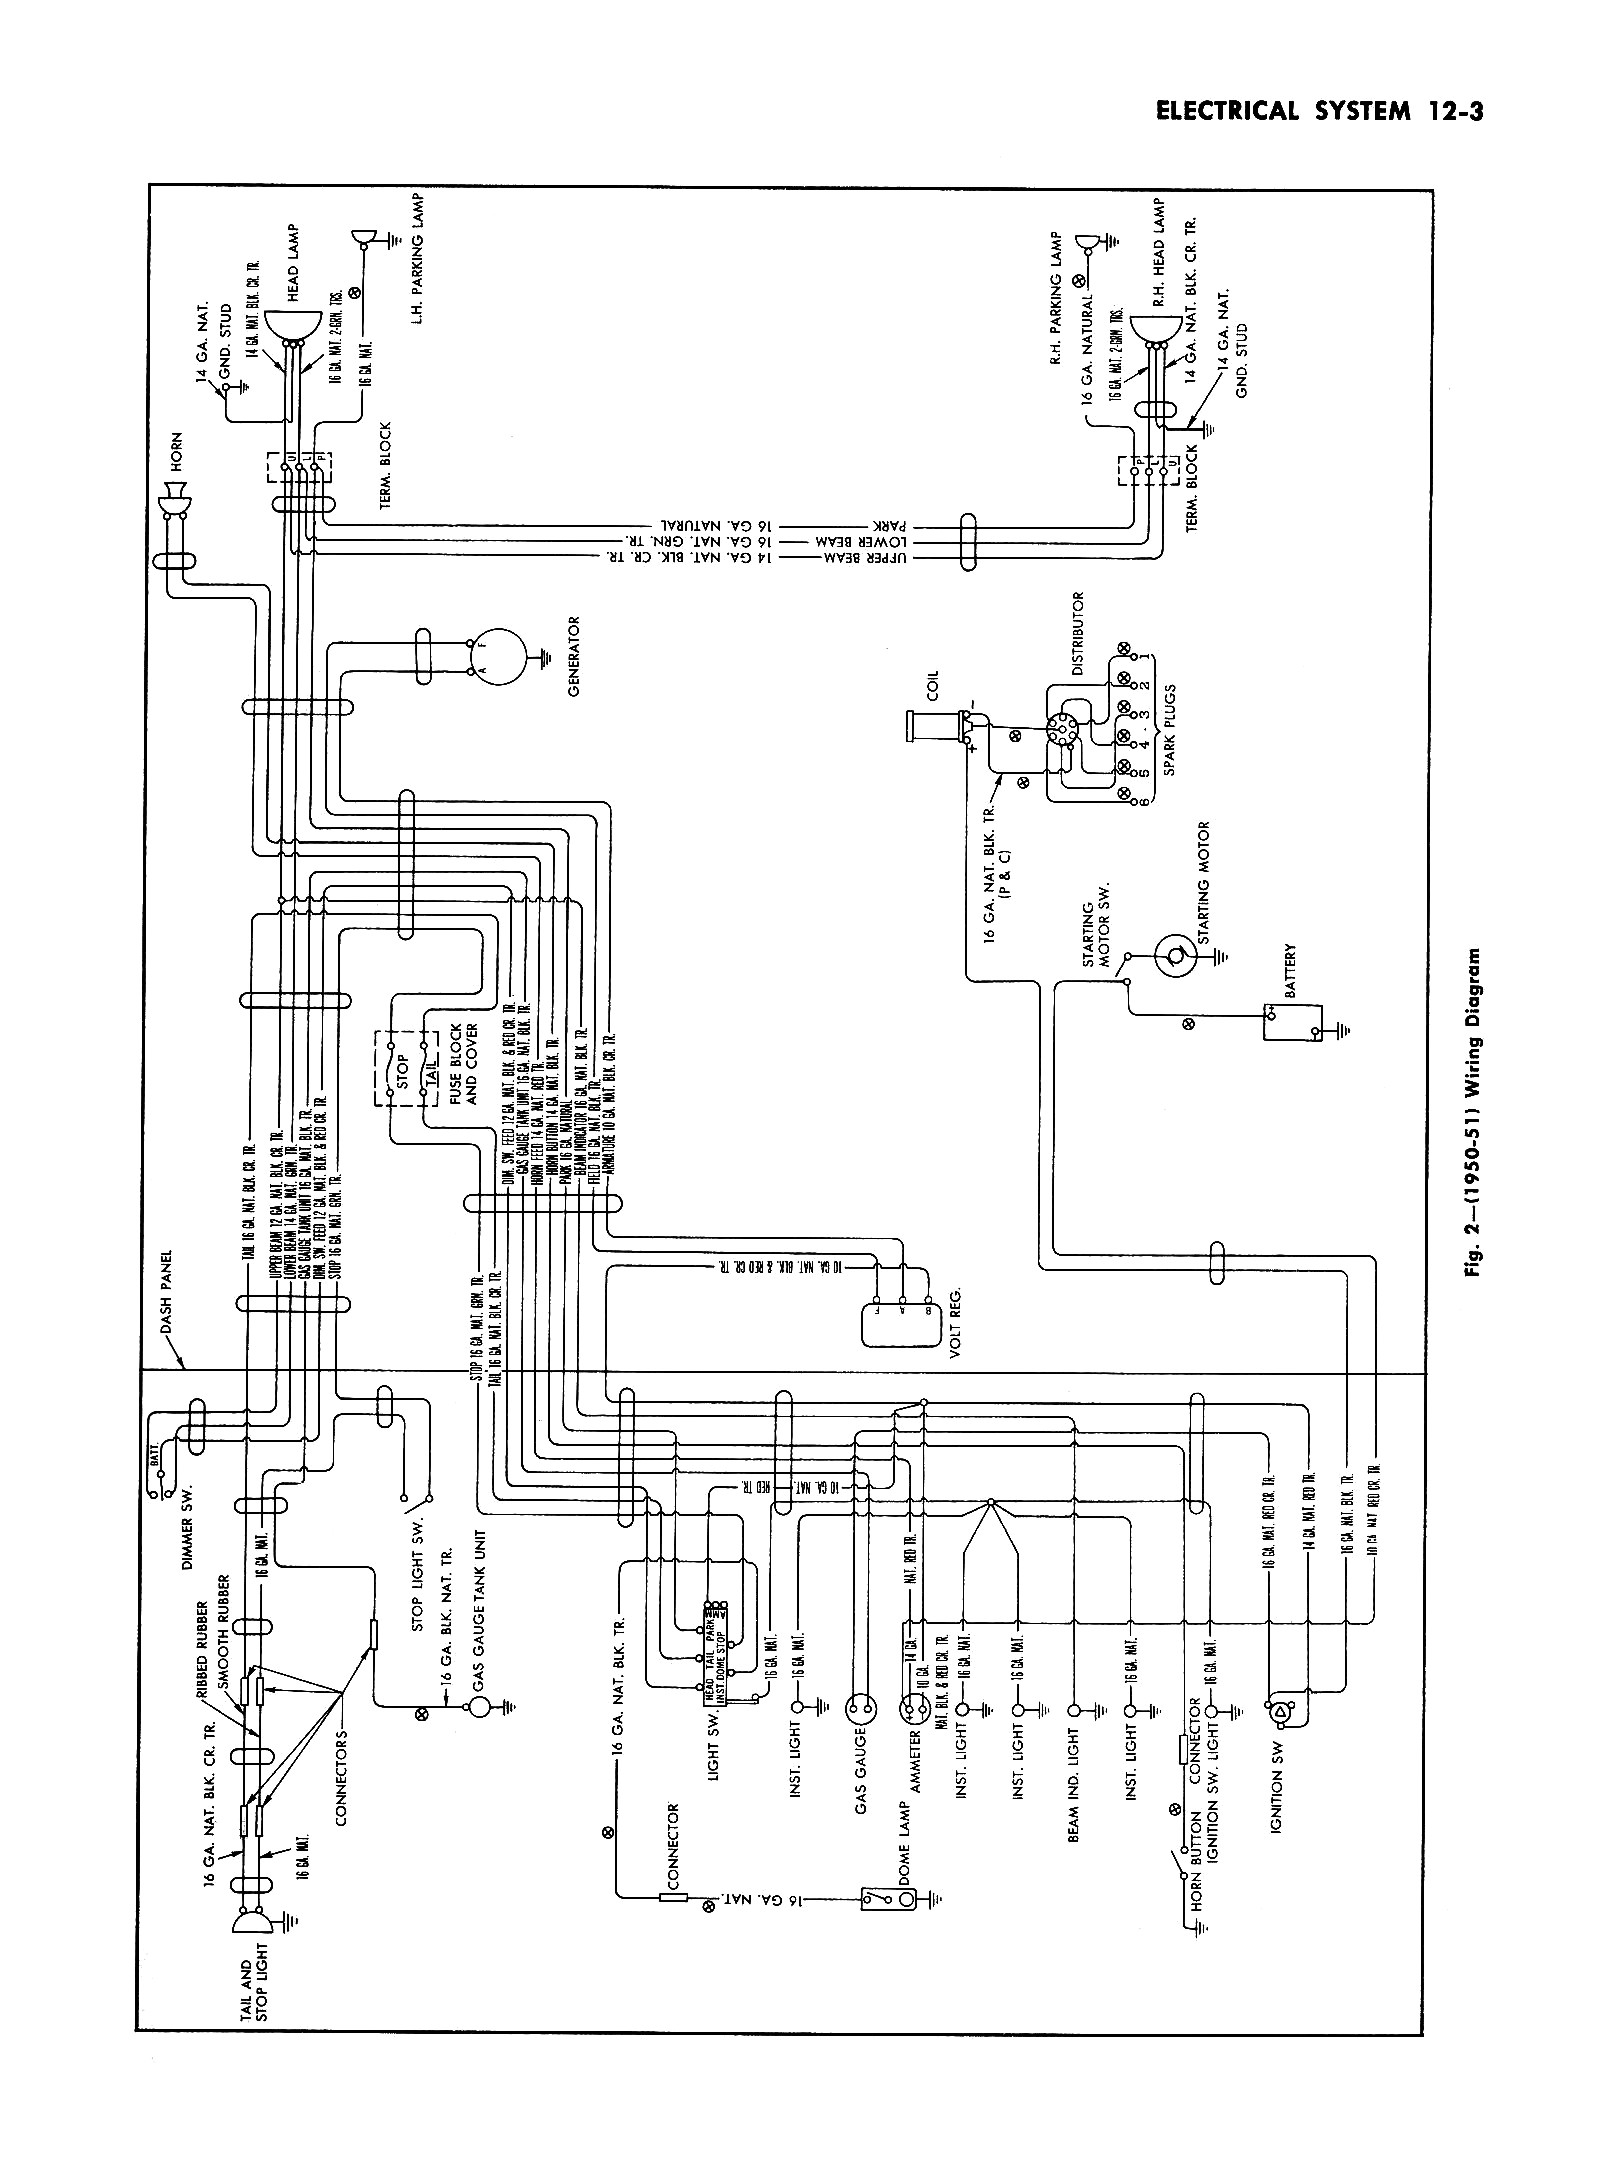 chevy wiring diagrams 1950 1950 car wiring · 1950 passenger car wiring